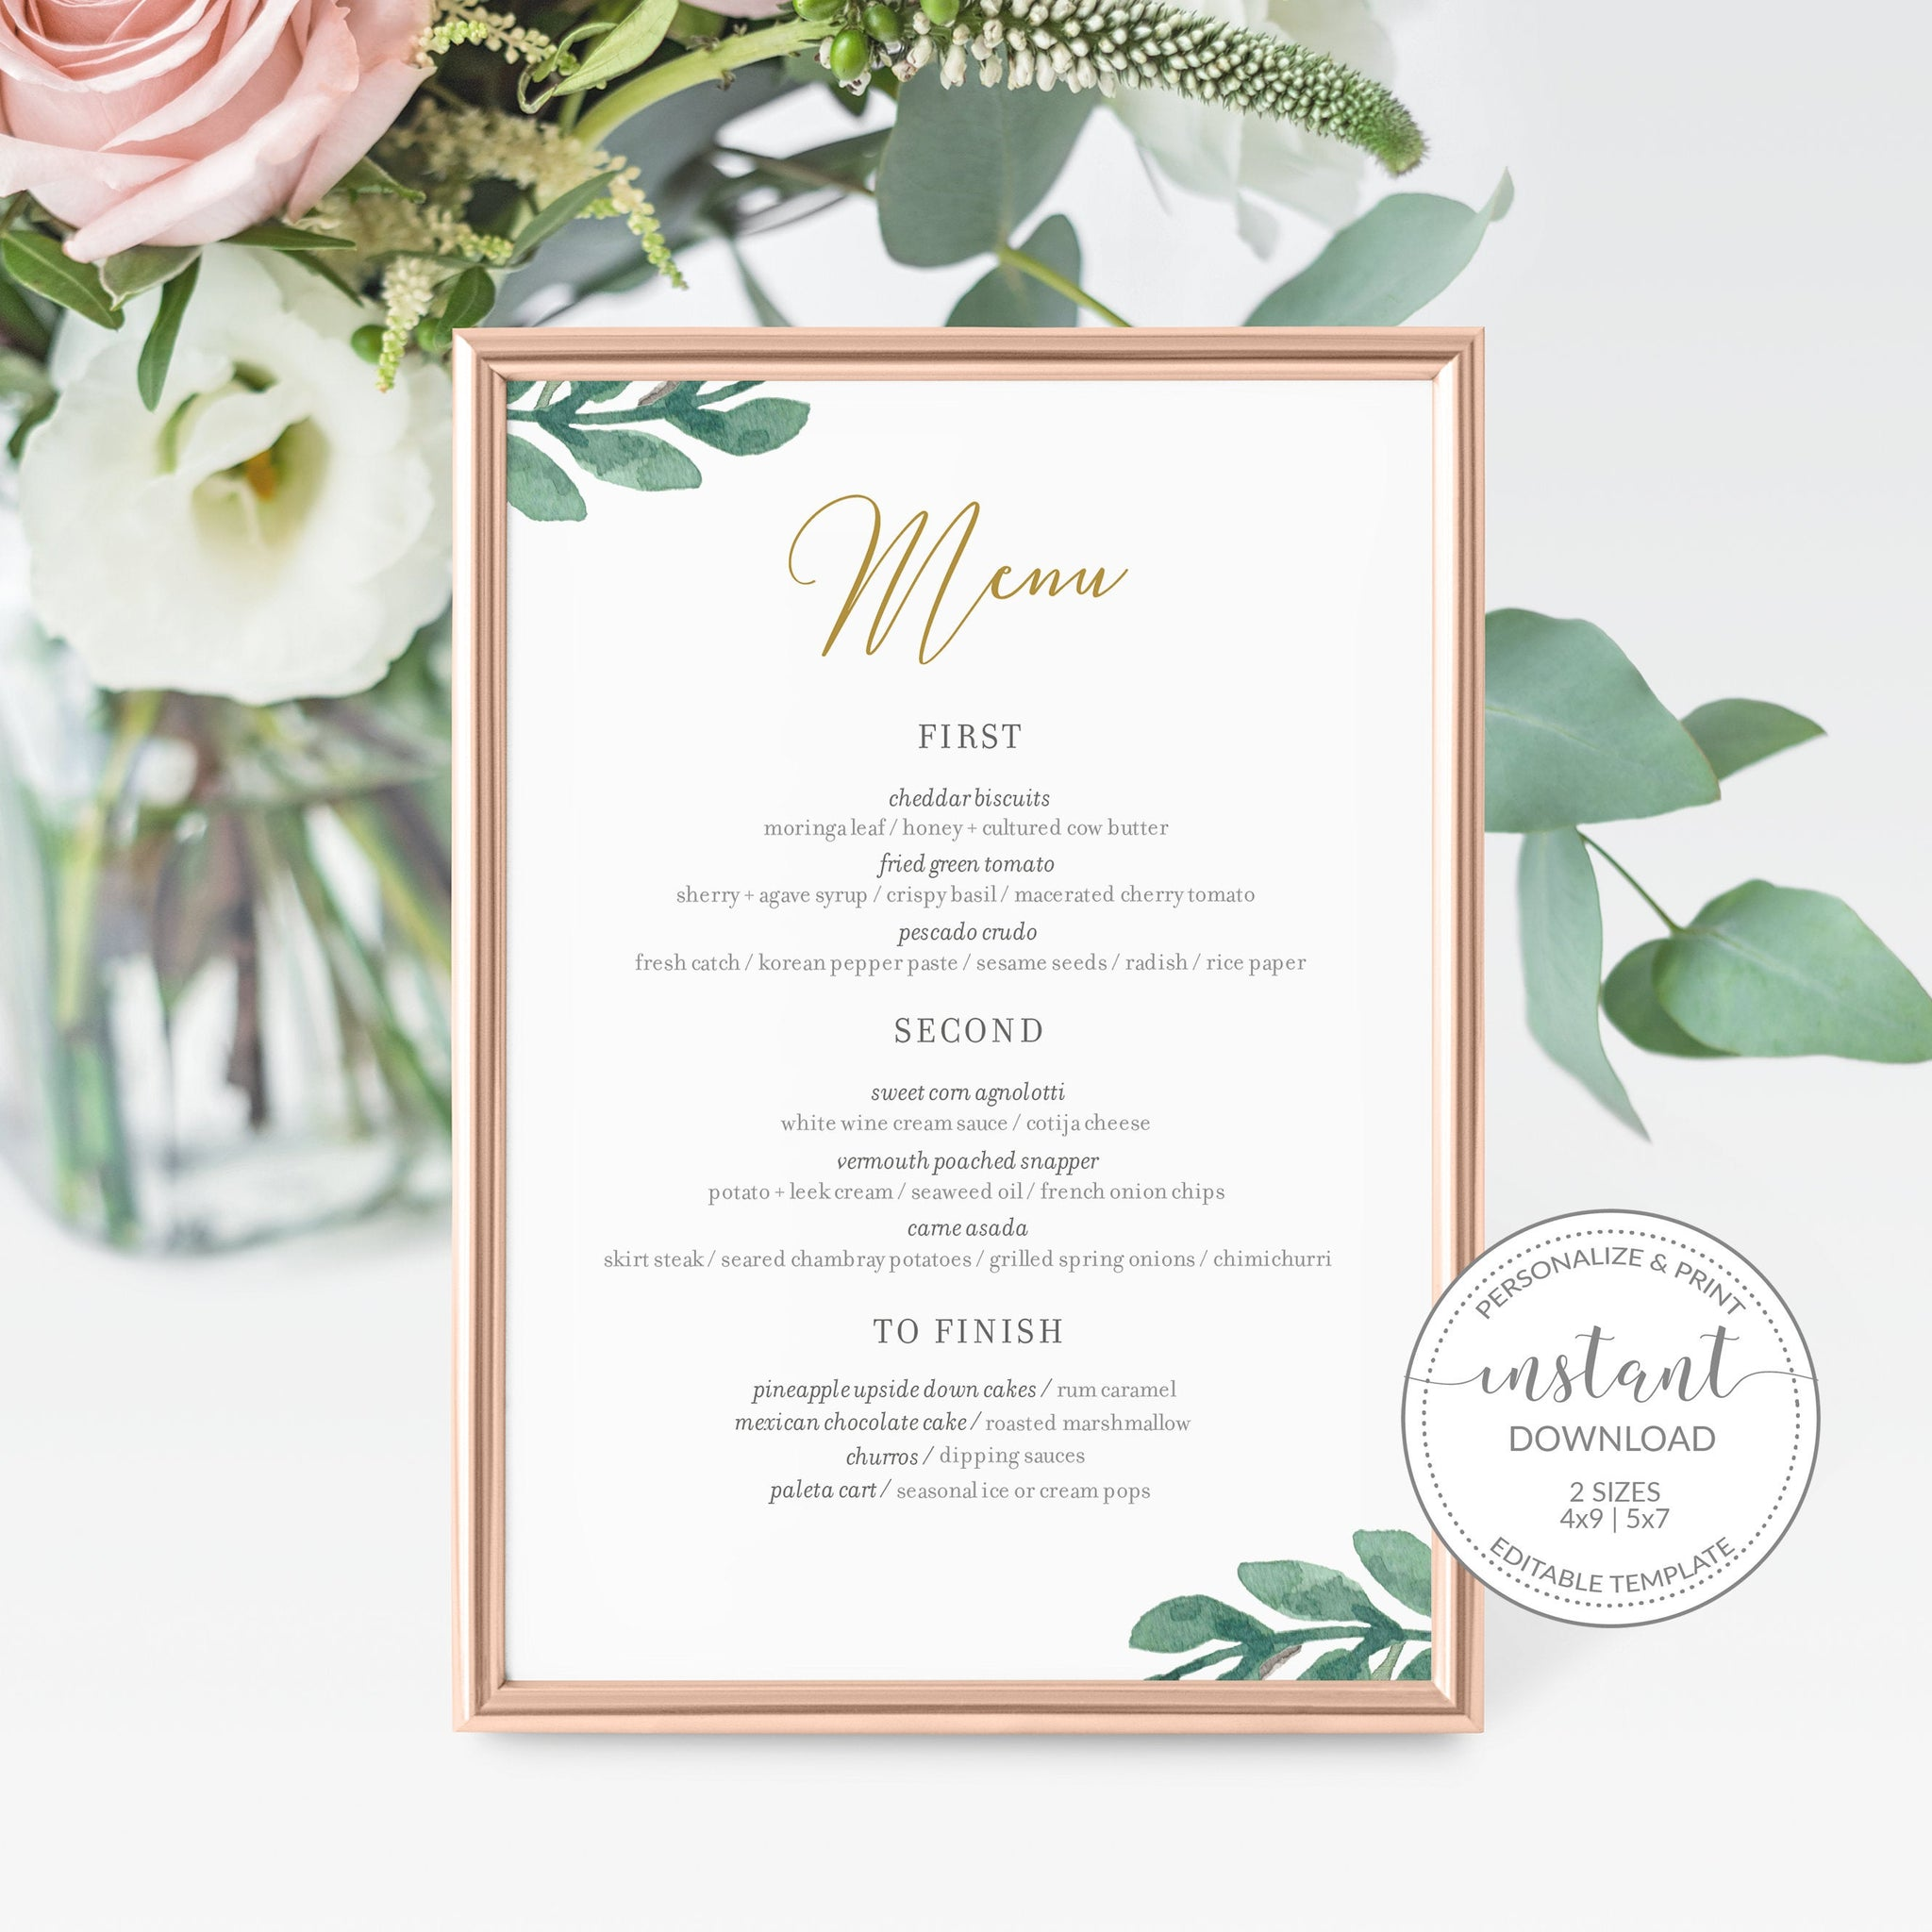 Greenery Wedding Menu Template, Greenery Menu Editable Download, Editable Menu Cards, Printable Menu, 4x9 & 5x7 - GFG100 - @PlumPolkaDot